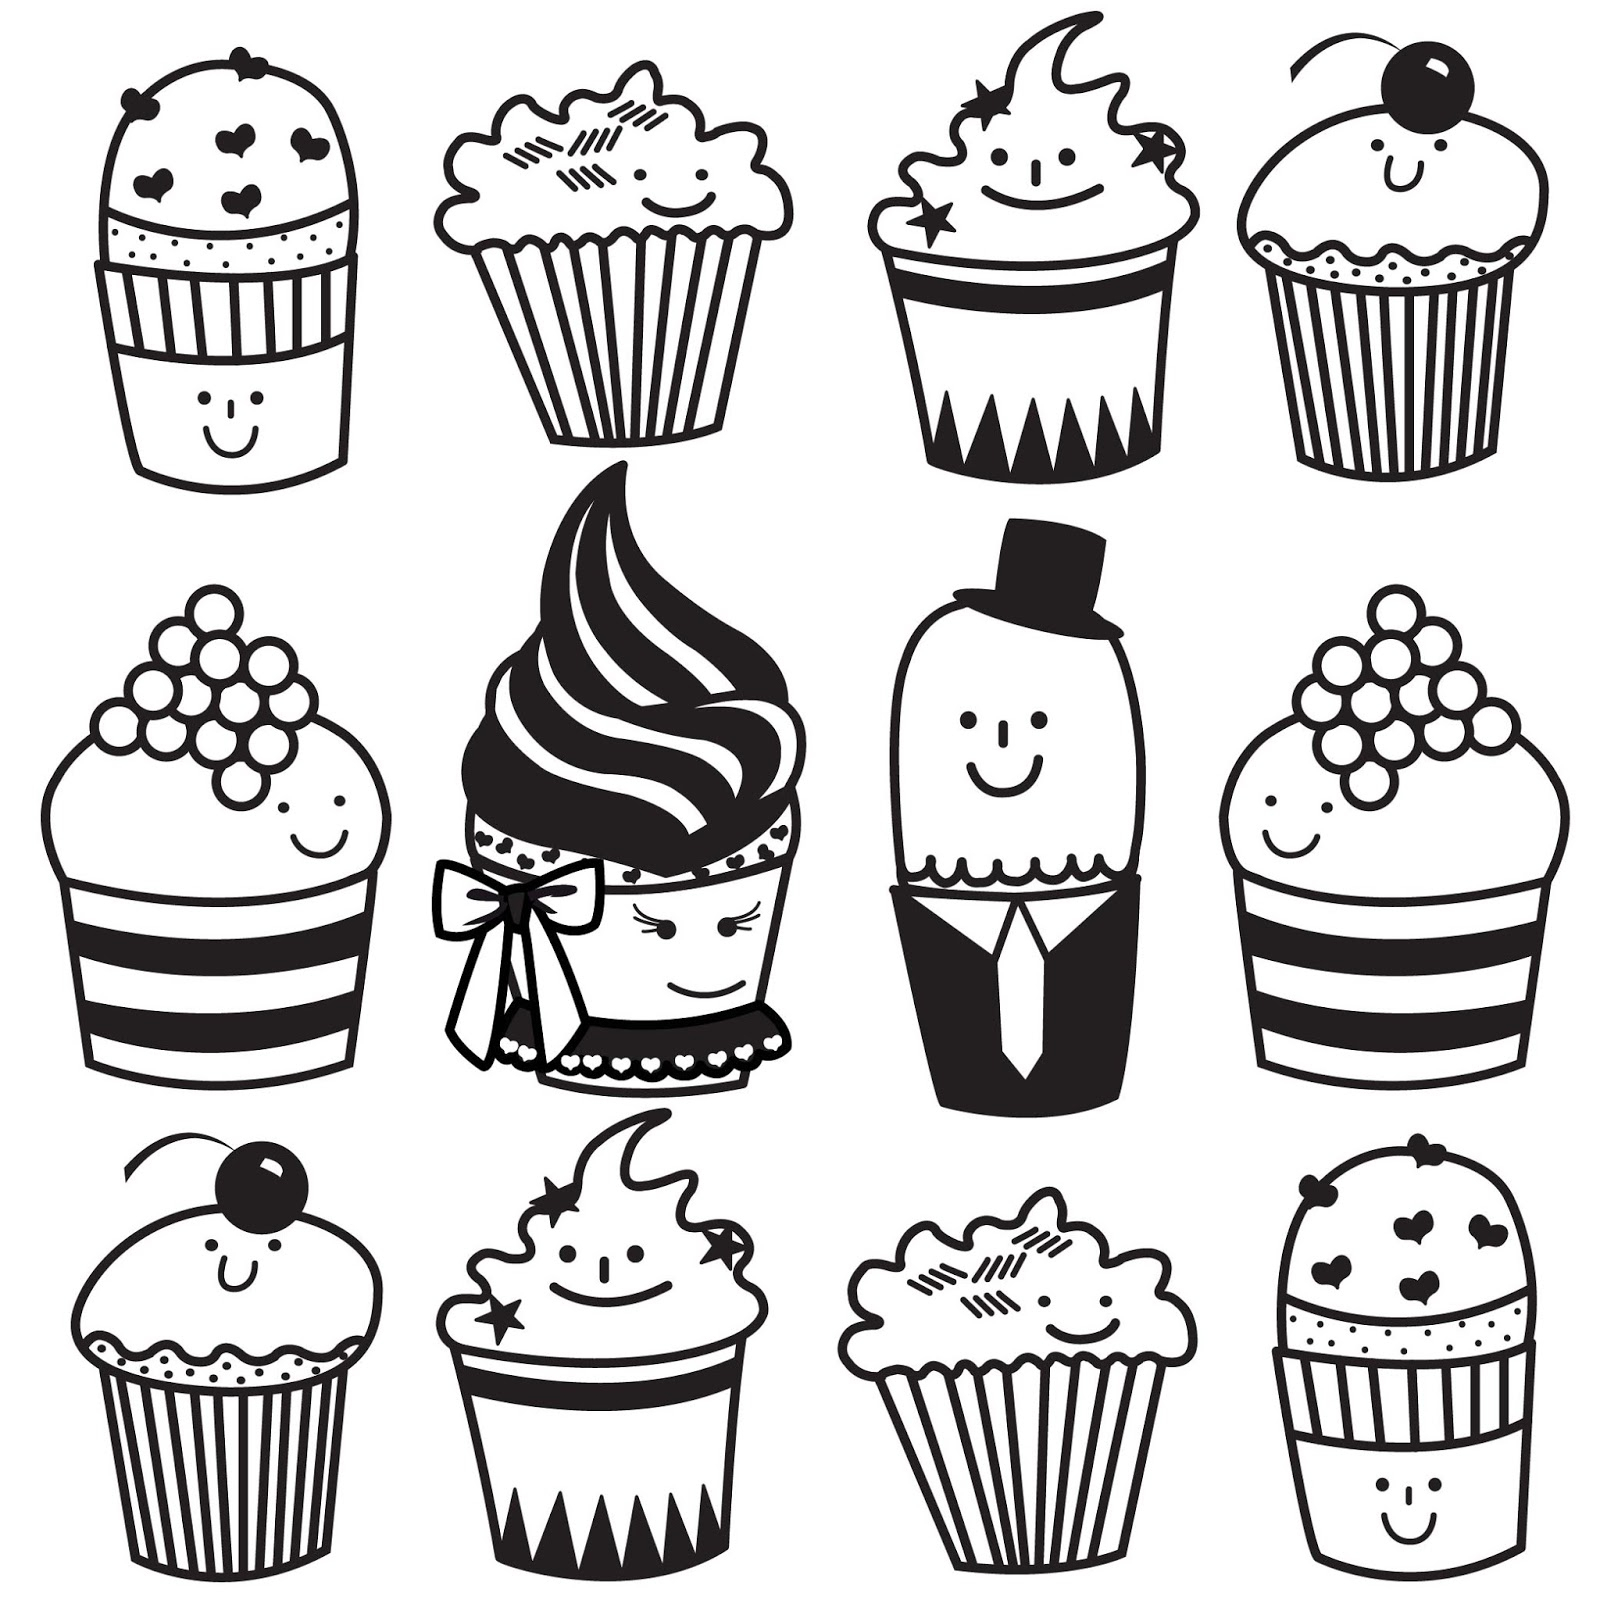 1600x1600 How To Draw A Cute Cupcake 1 1 Youtube Creative Ideas